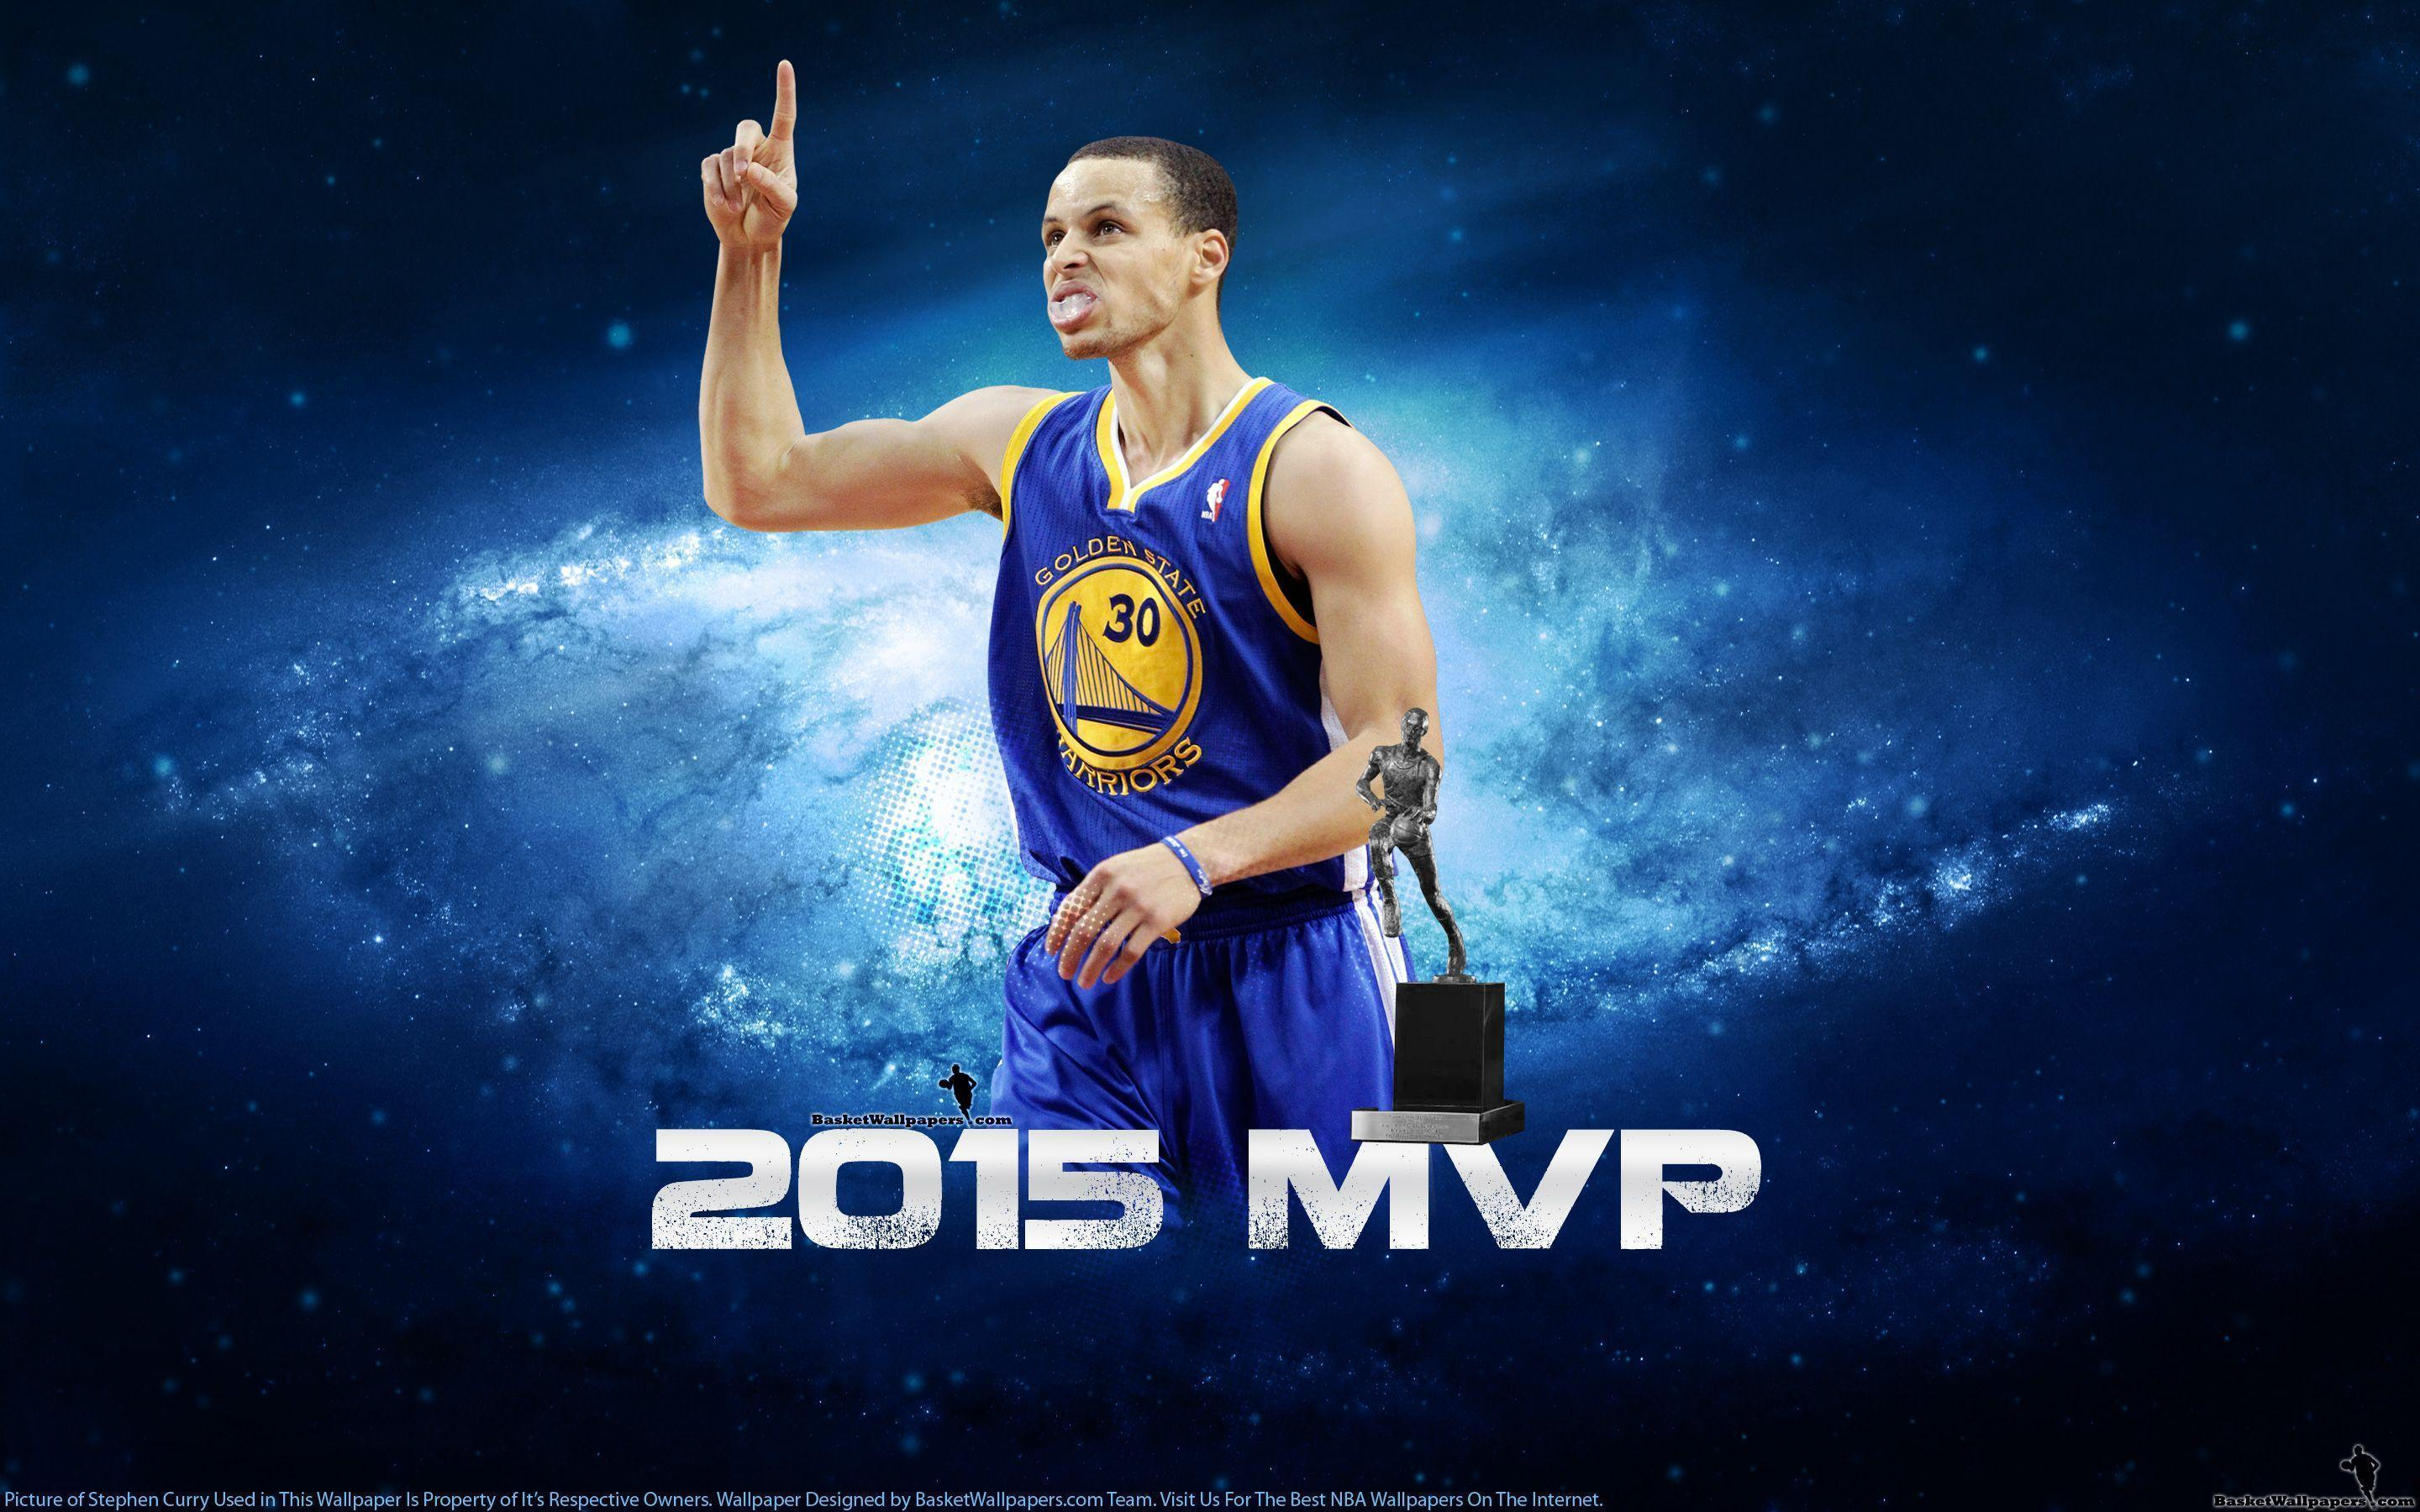 Stephen curry wallpapers wallpaper cave for Best home wallpaper 2013